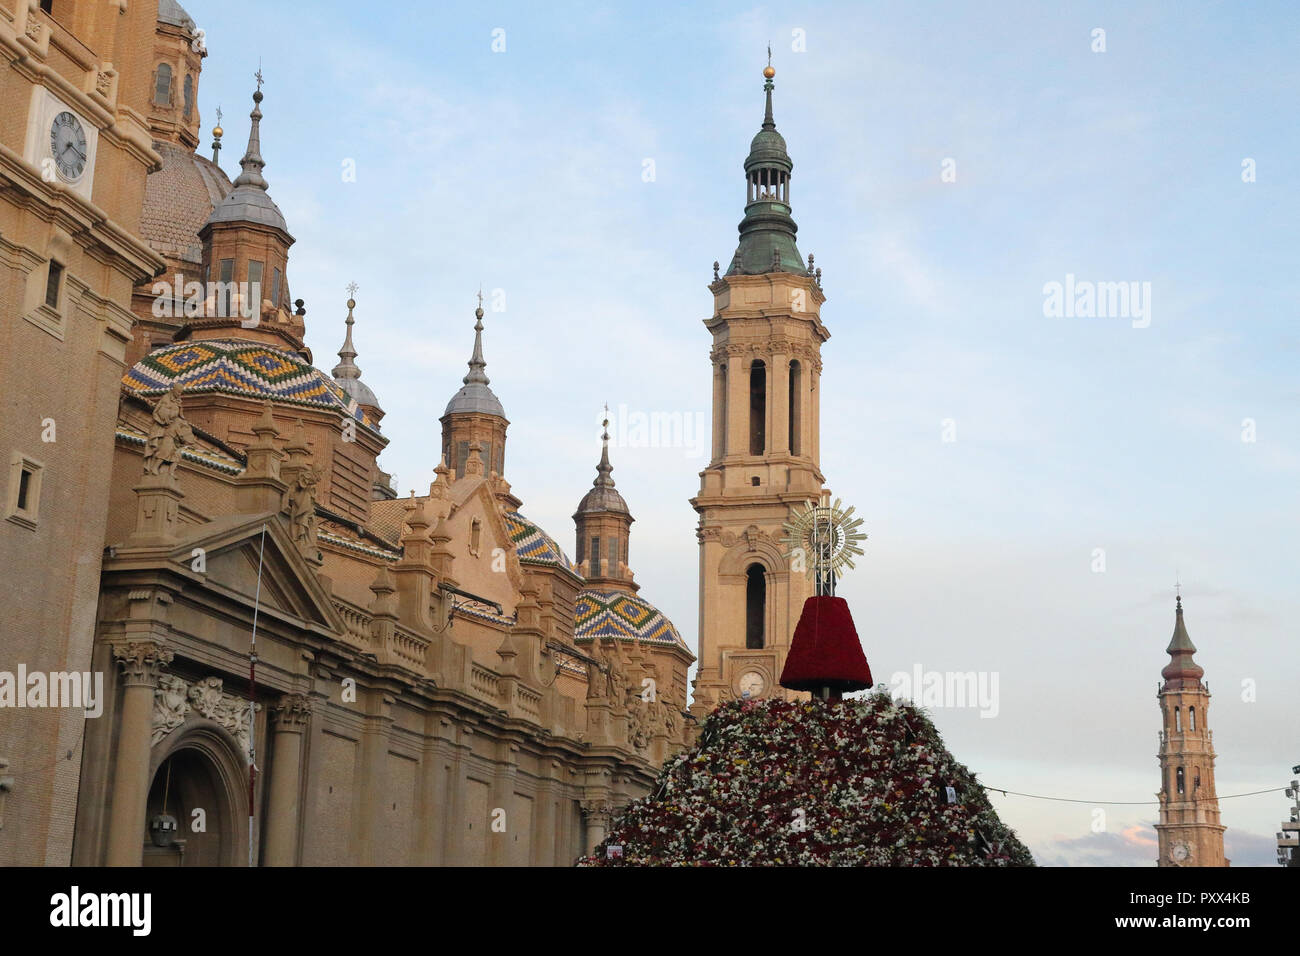 The Pilar Cathedral (Catedral del Pilar) with the flowers offering hill and relic in the Pilar Square (Plaza del Pilar) during Pilar 2018 festival - Stock Image